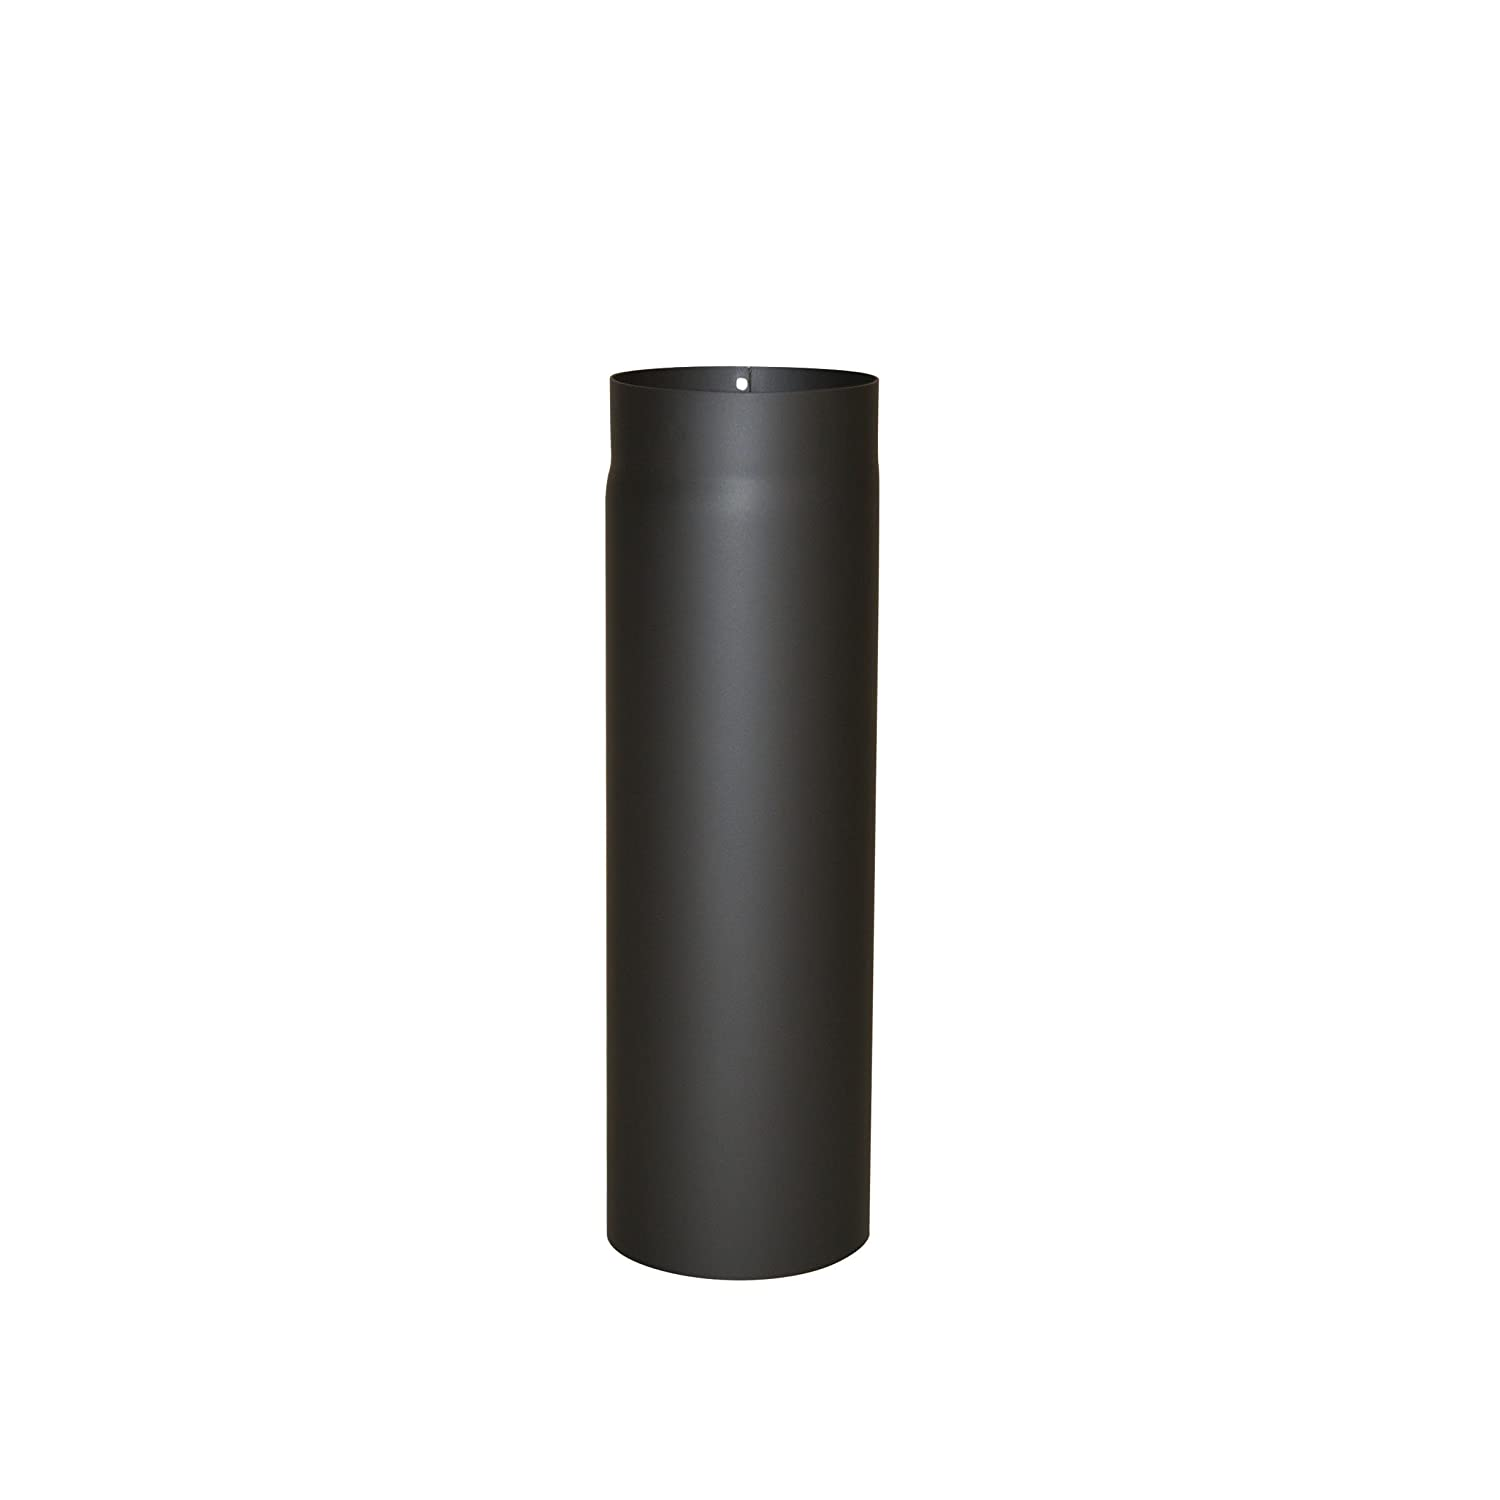 Kamino - Flam Ø 130 mm Steel Stove Pipe, Heat Resistant Senotherm Coating Flue Pipe for Stoves, approx. 500 mm Straight Length Chimney Pipe, Single Wall Pipe EN 1856-2 Standard, Black 331751